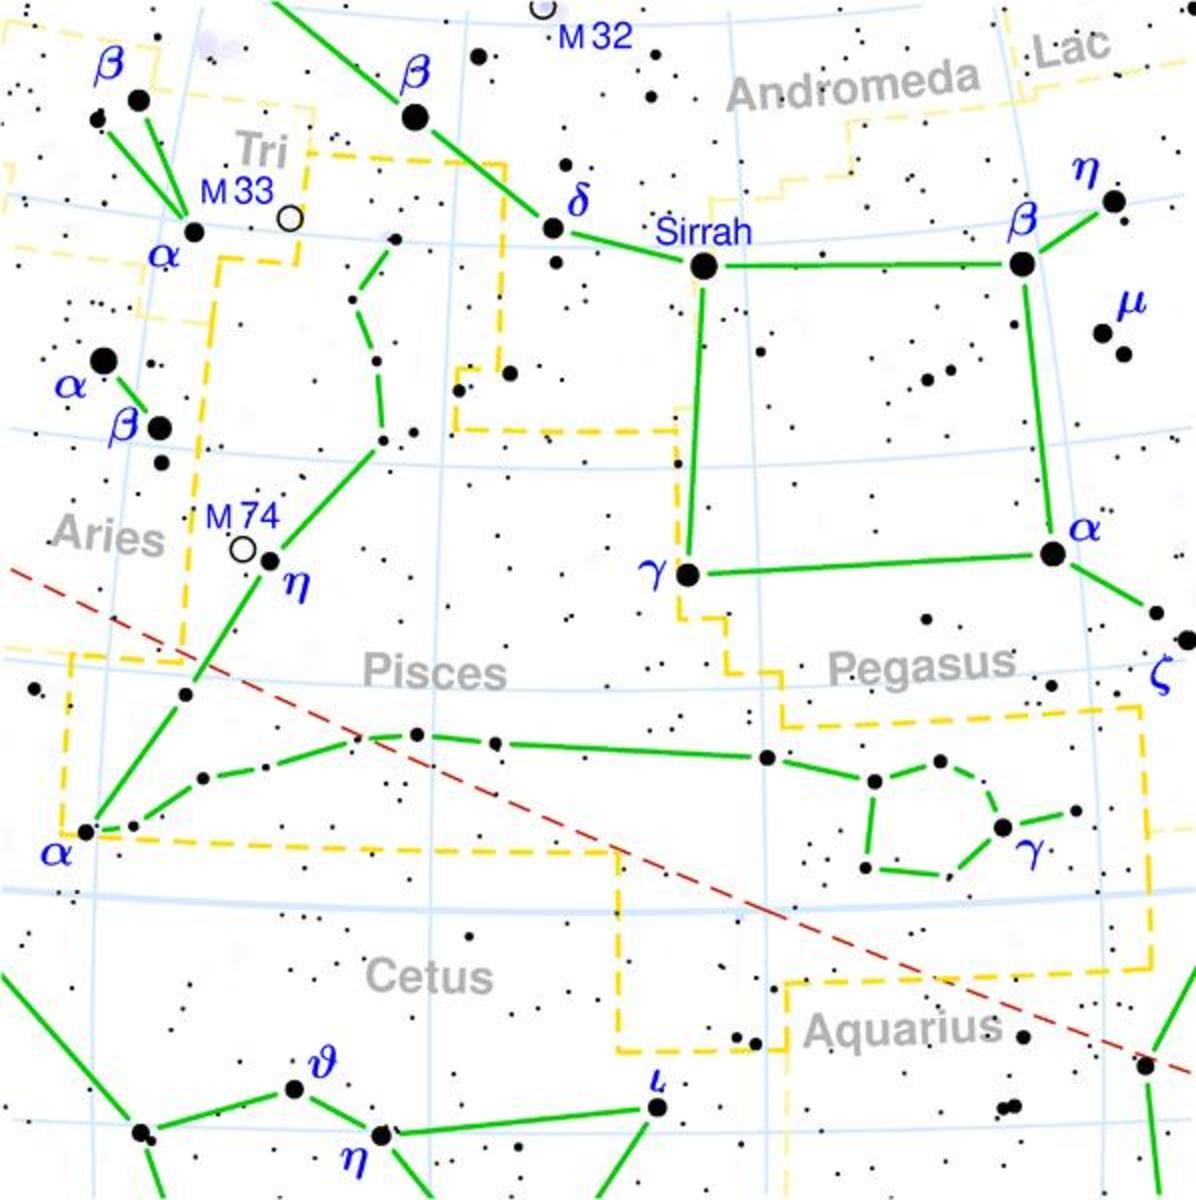 Map of Pisces Constellation